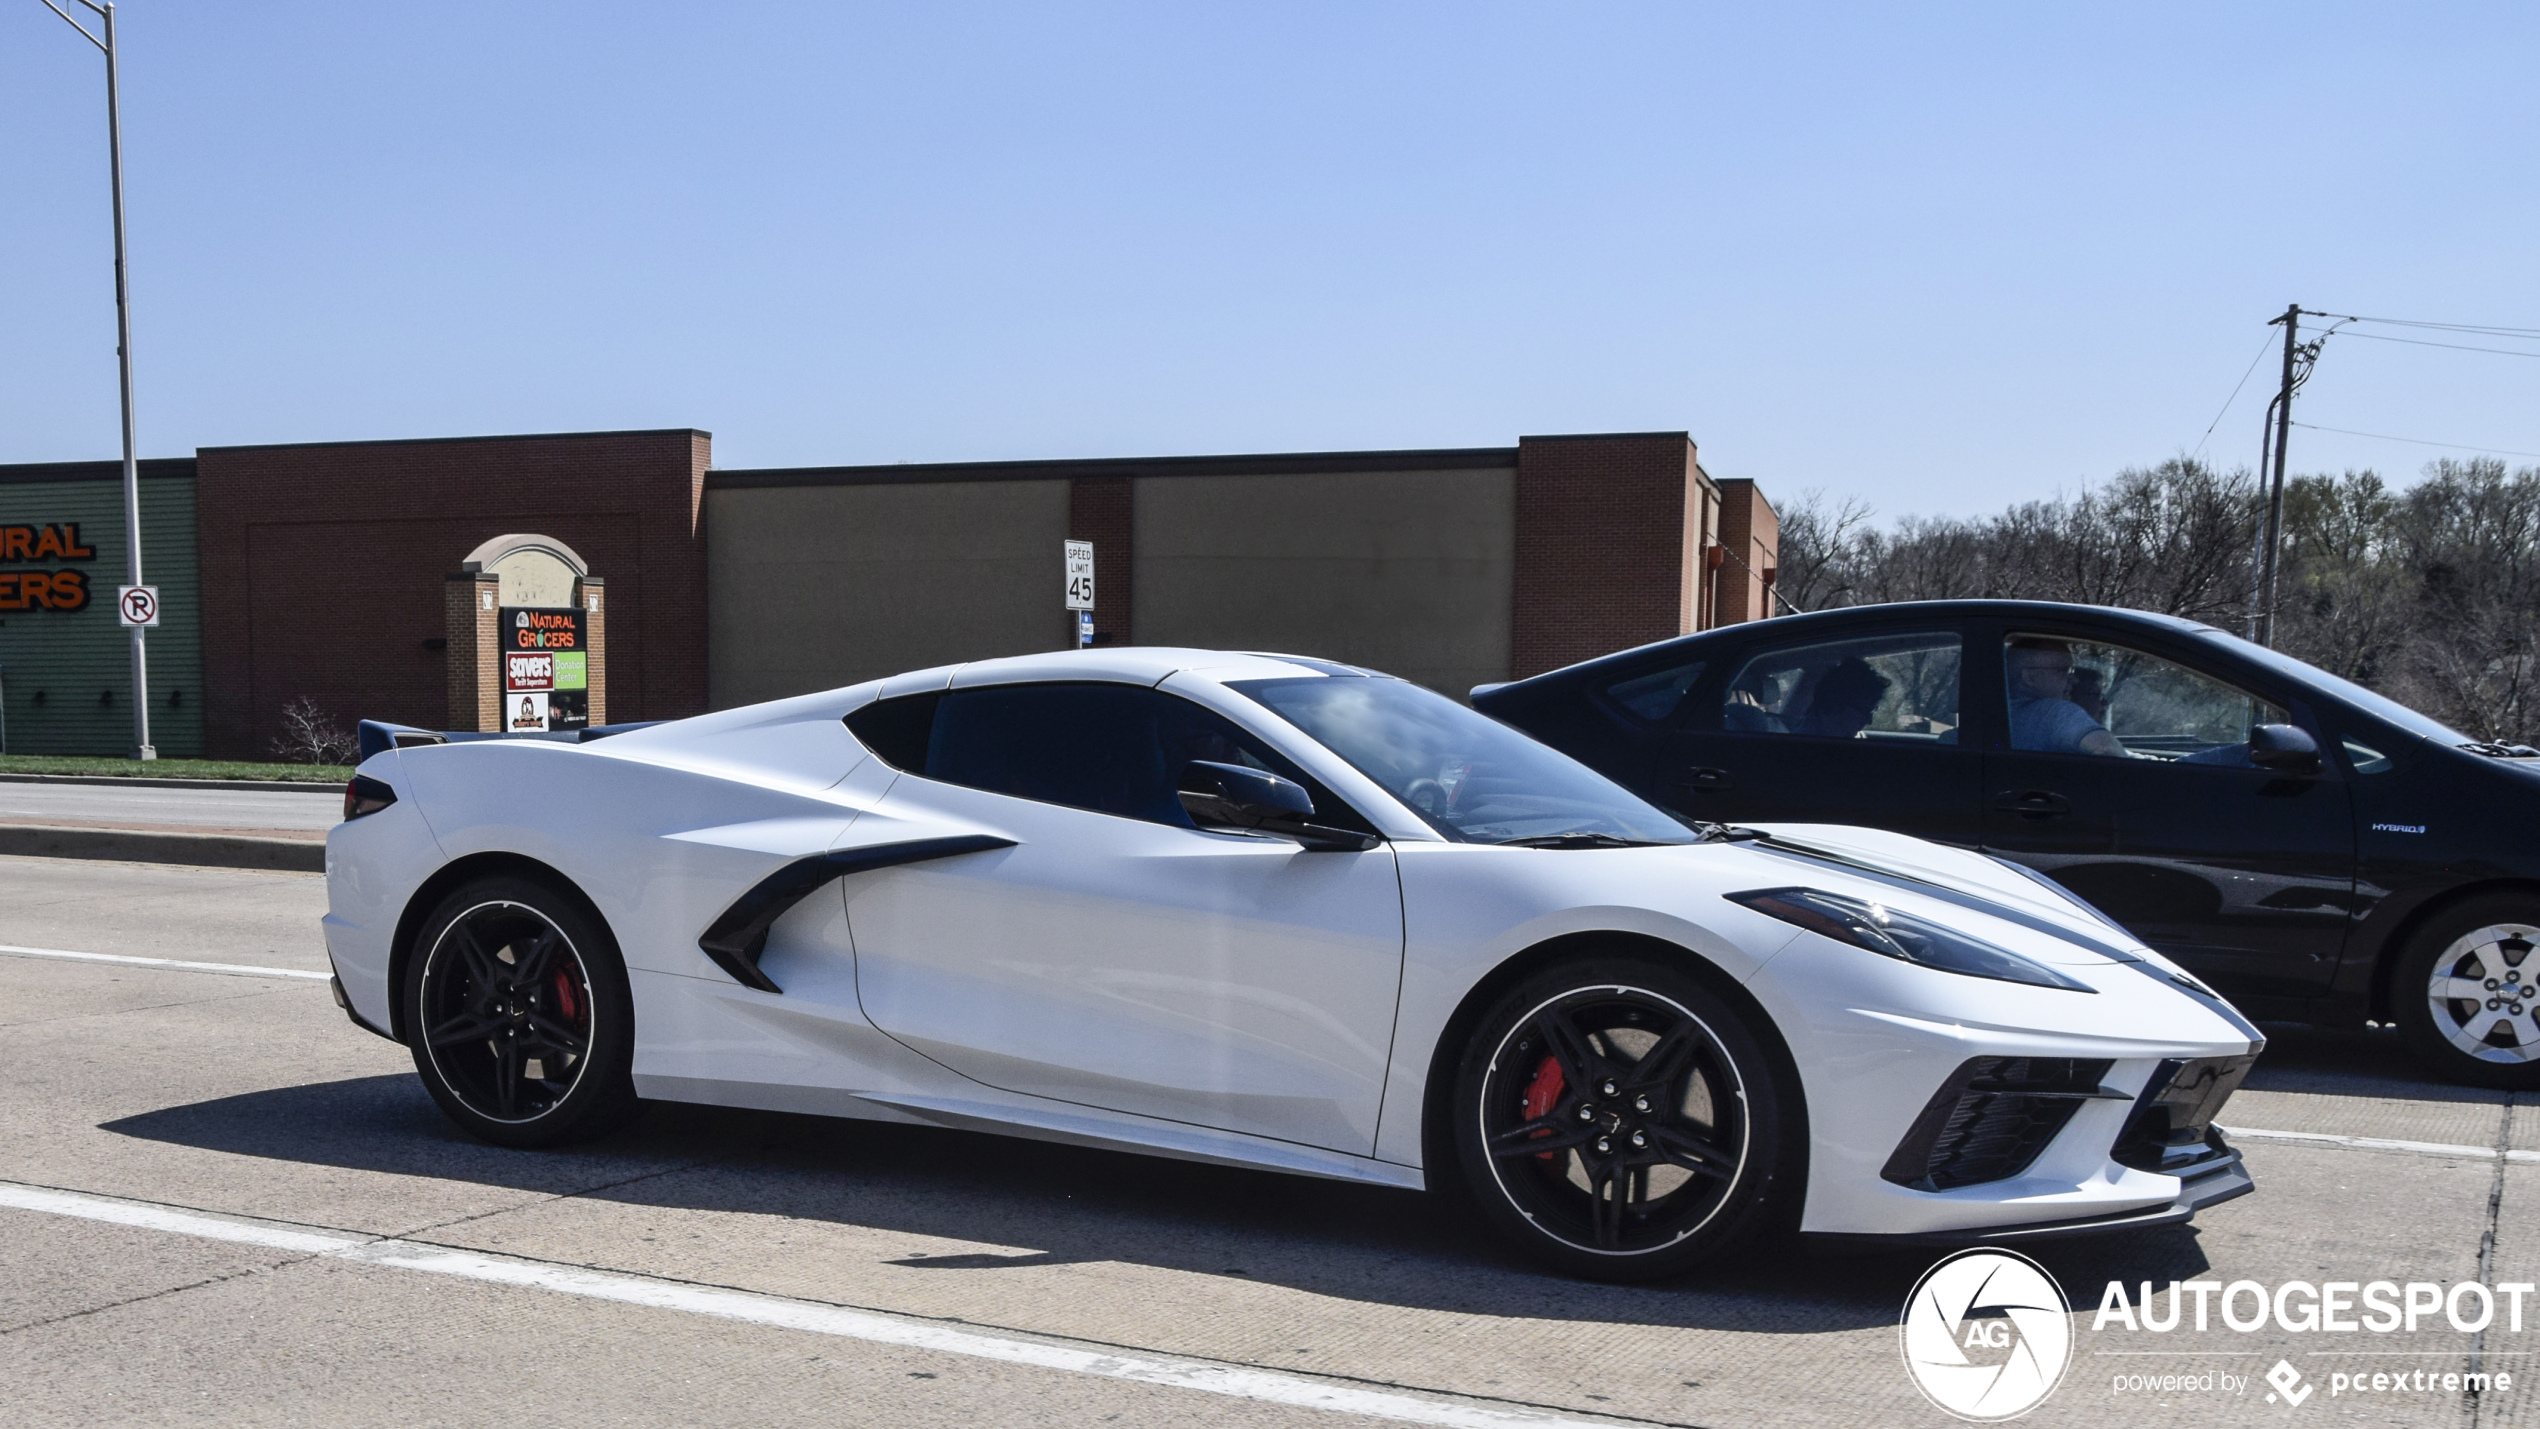 Spot of the day USA: Corvette C8 By OPspotters